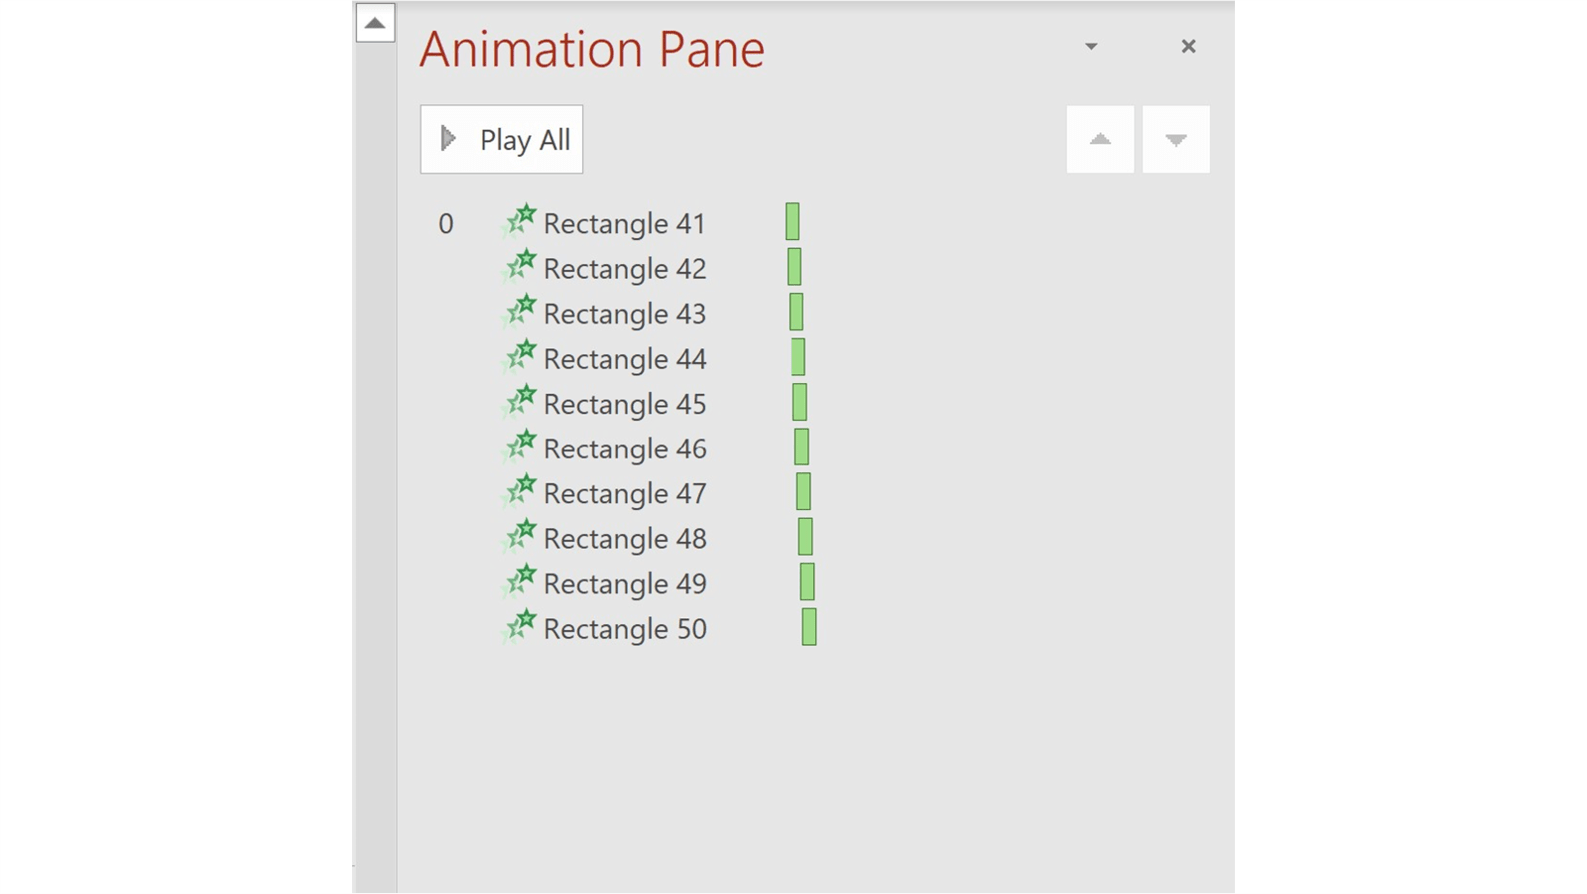 Animation pane showing all animations for this transition